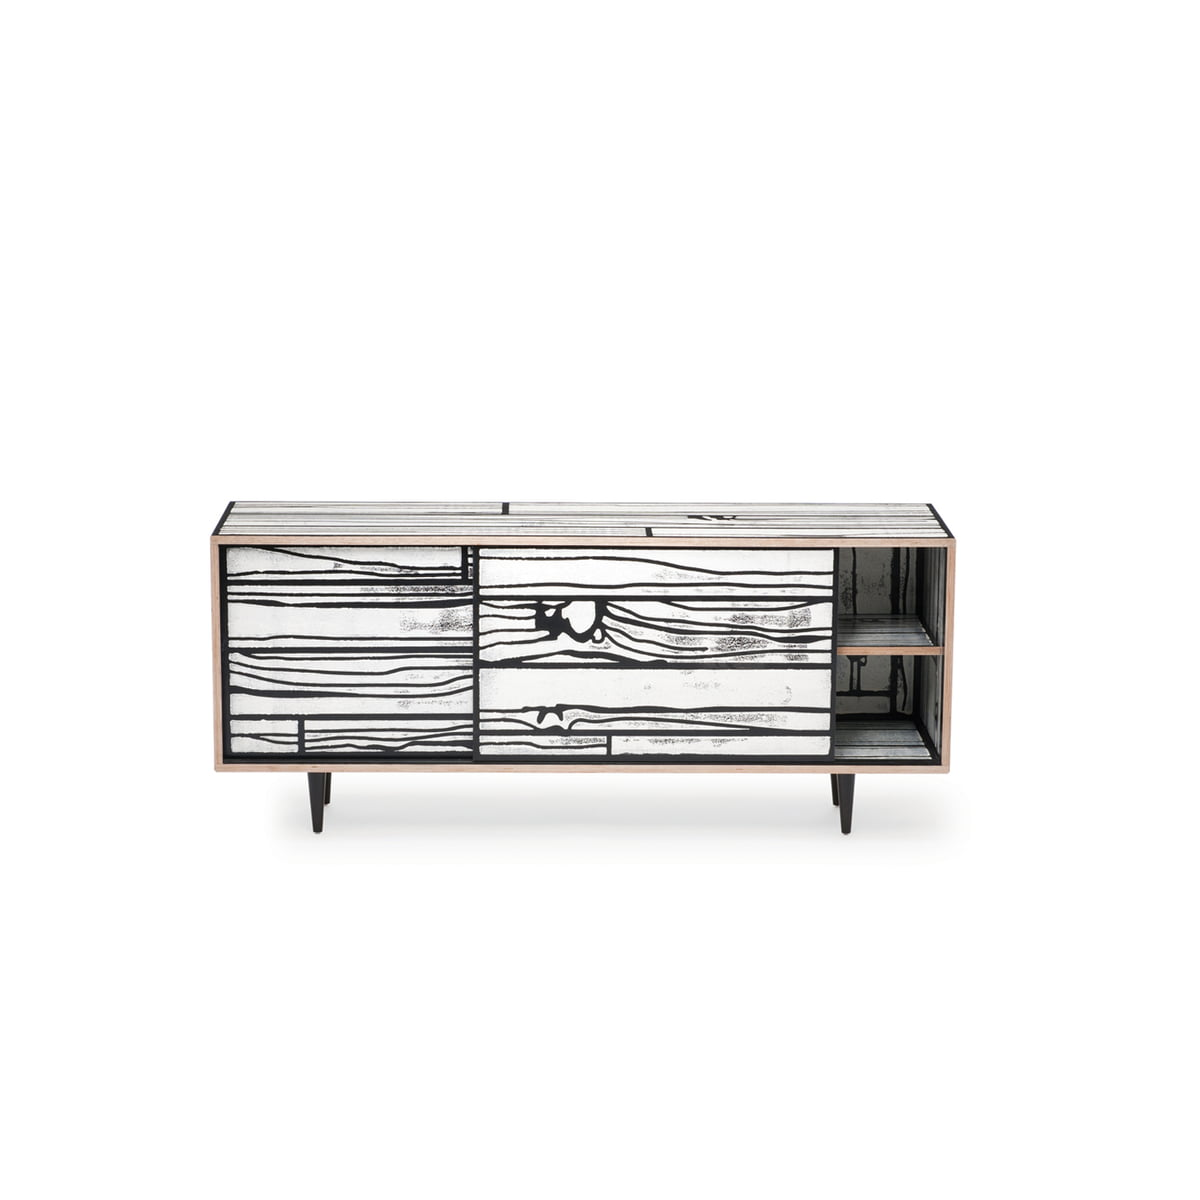 WrongWoods sideboard by Established & Sons